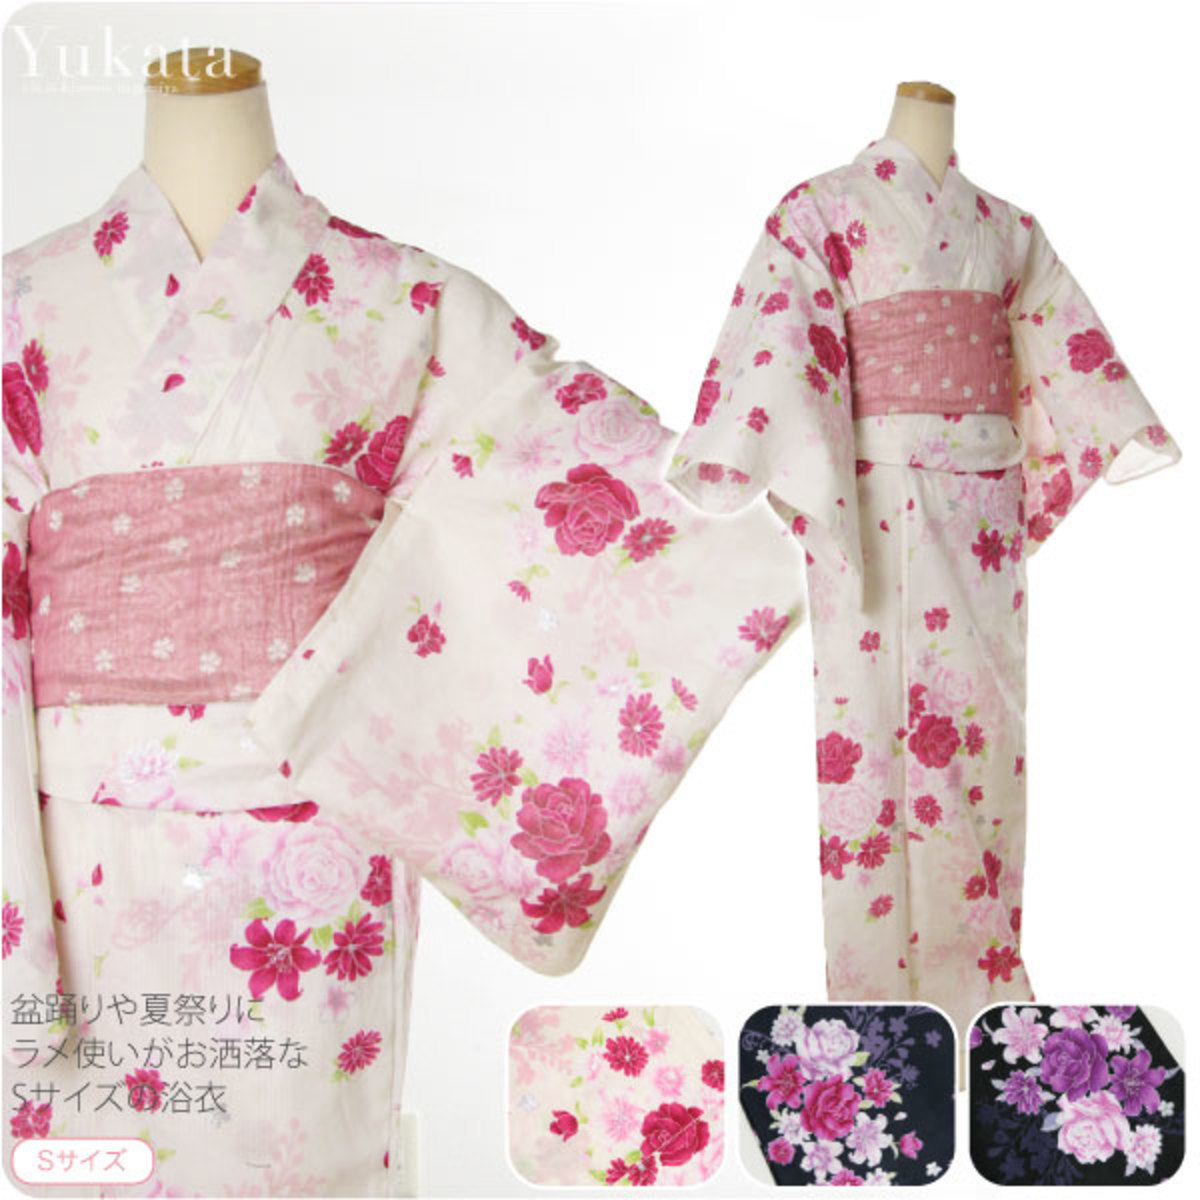 This style of short-sleeved kimono is more associated with married women. Older women tend to wear darker and more subdued patterns than younger women.